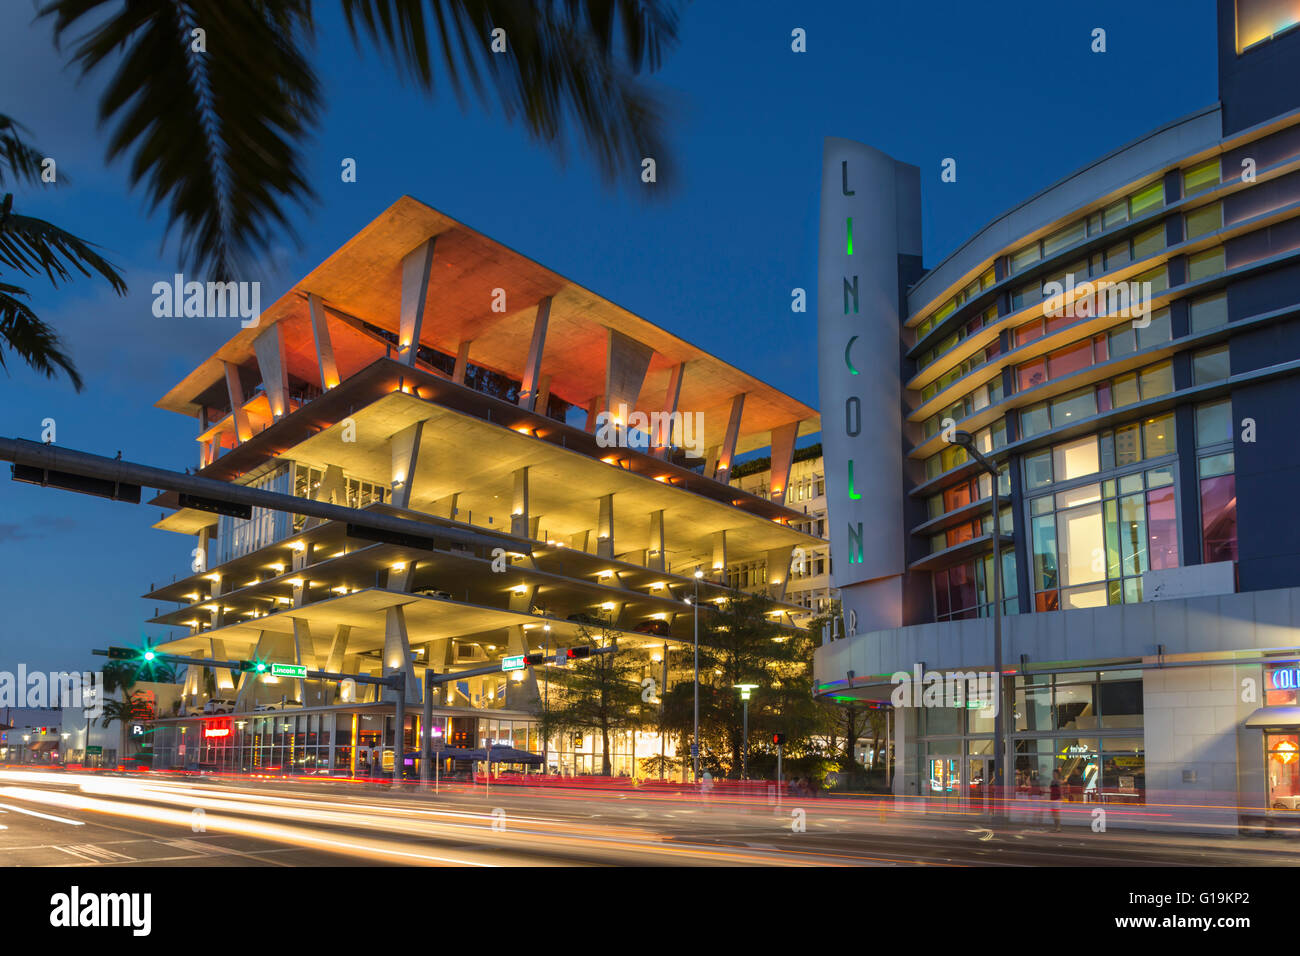 de center today herzog article meuron lincon buildings miami lincoln usa and review road by parking architectural garage